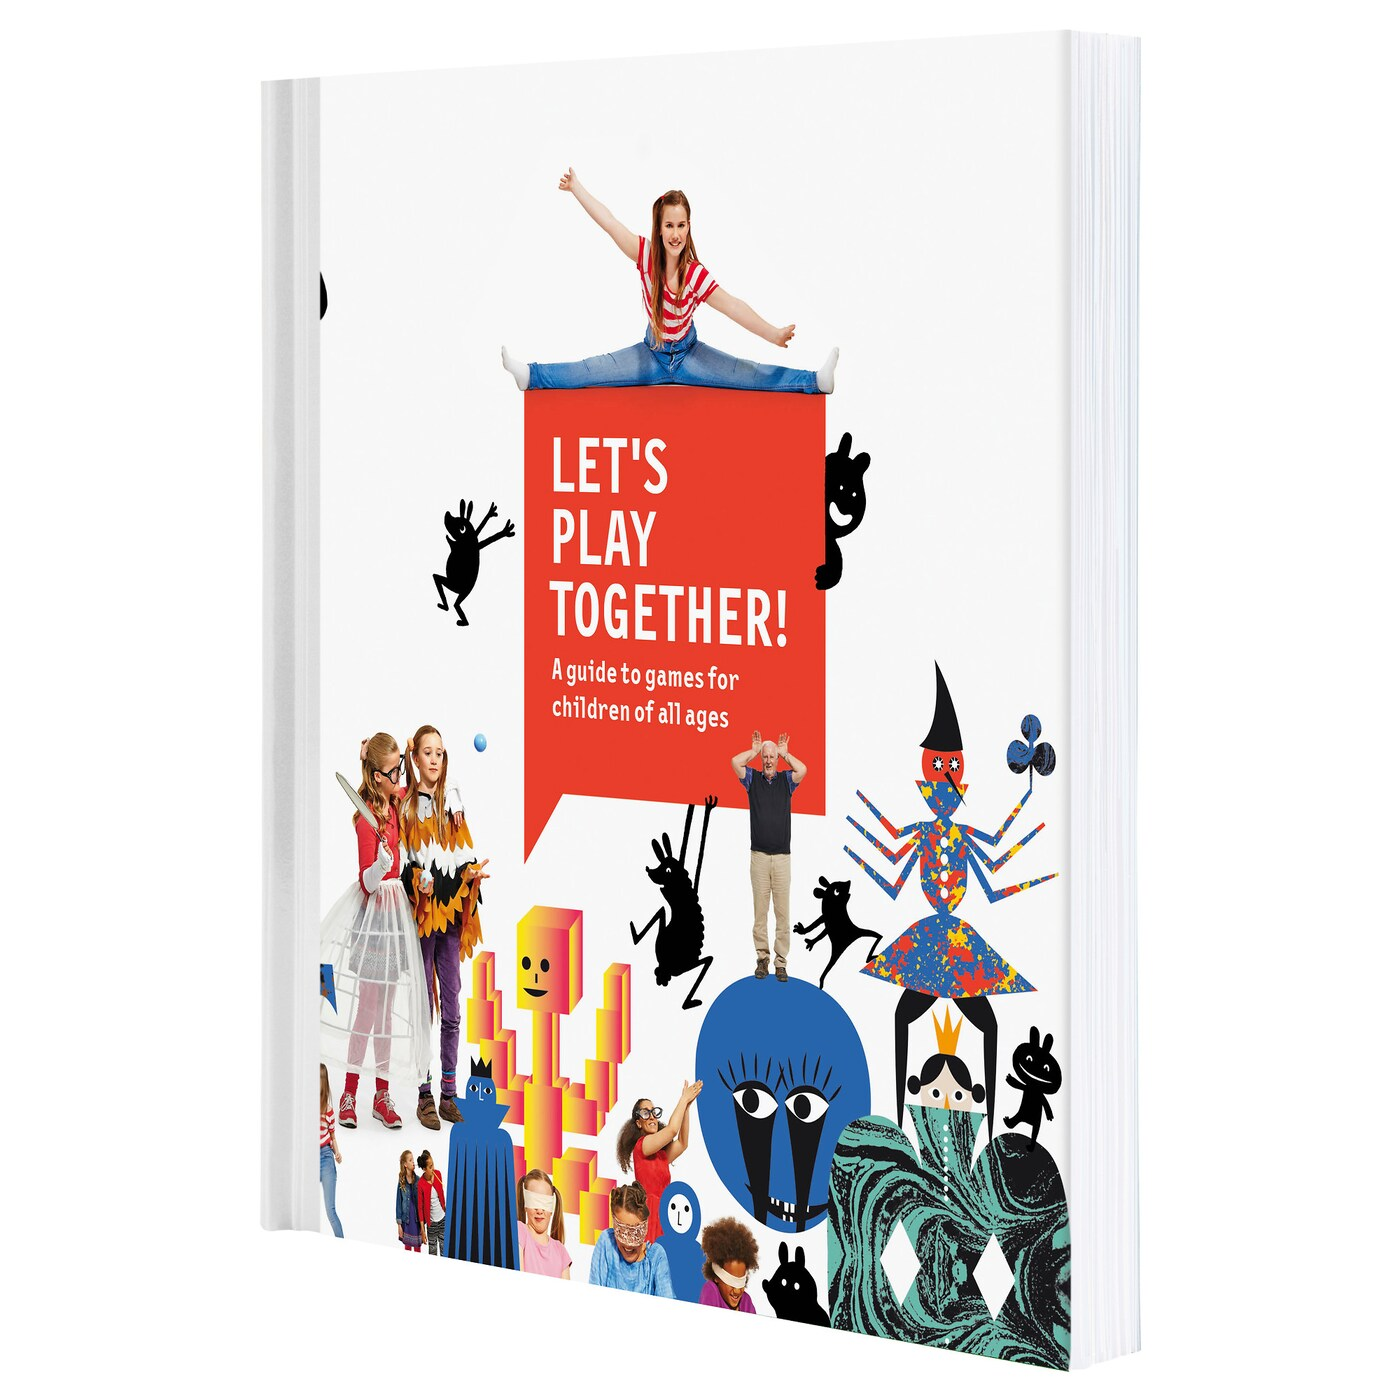 IKEA LATTJO - PLAY TOGETHER book